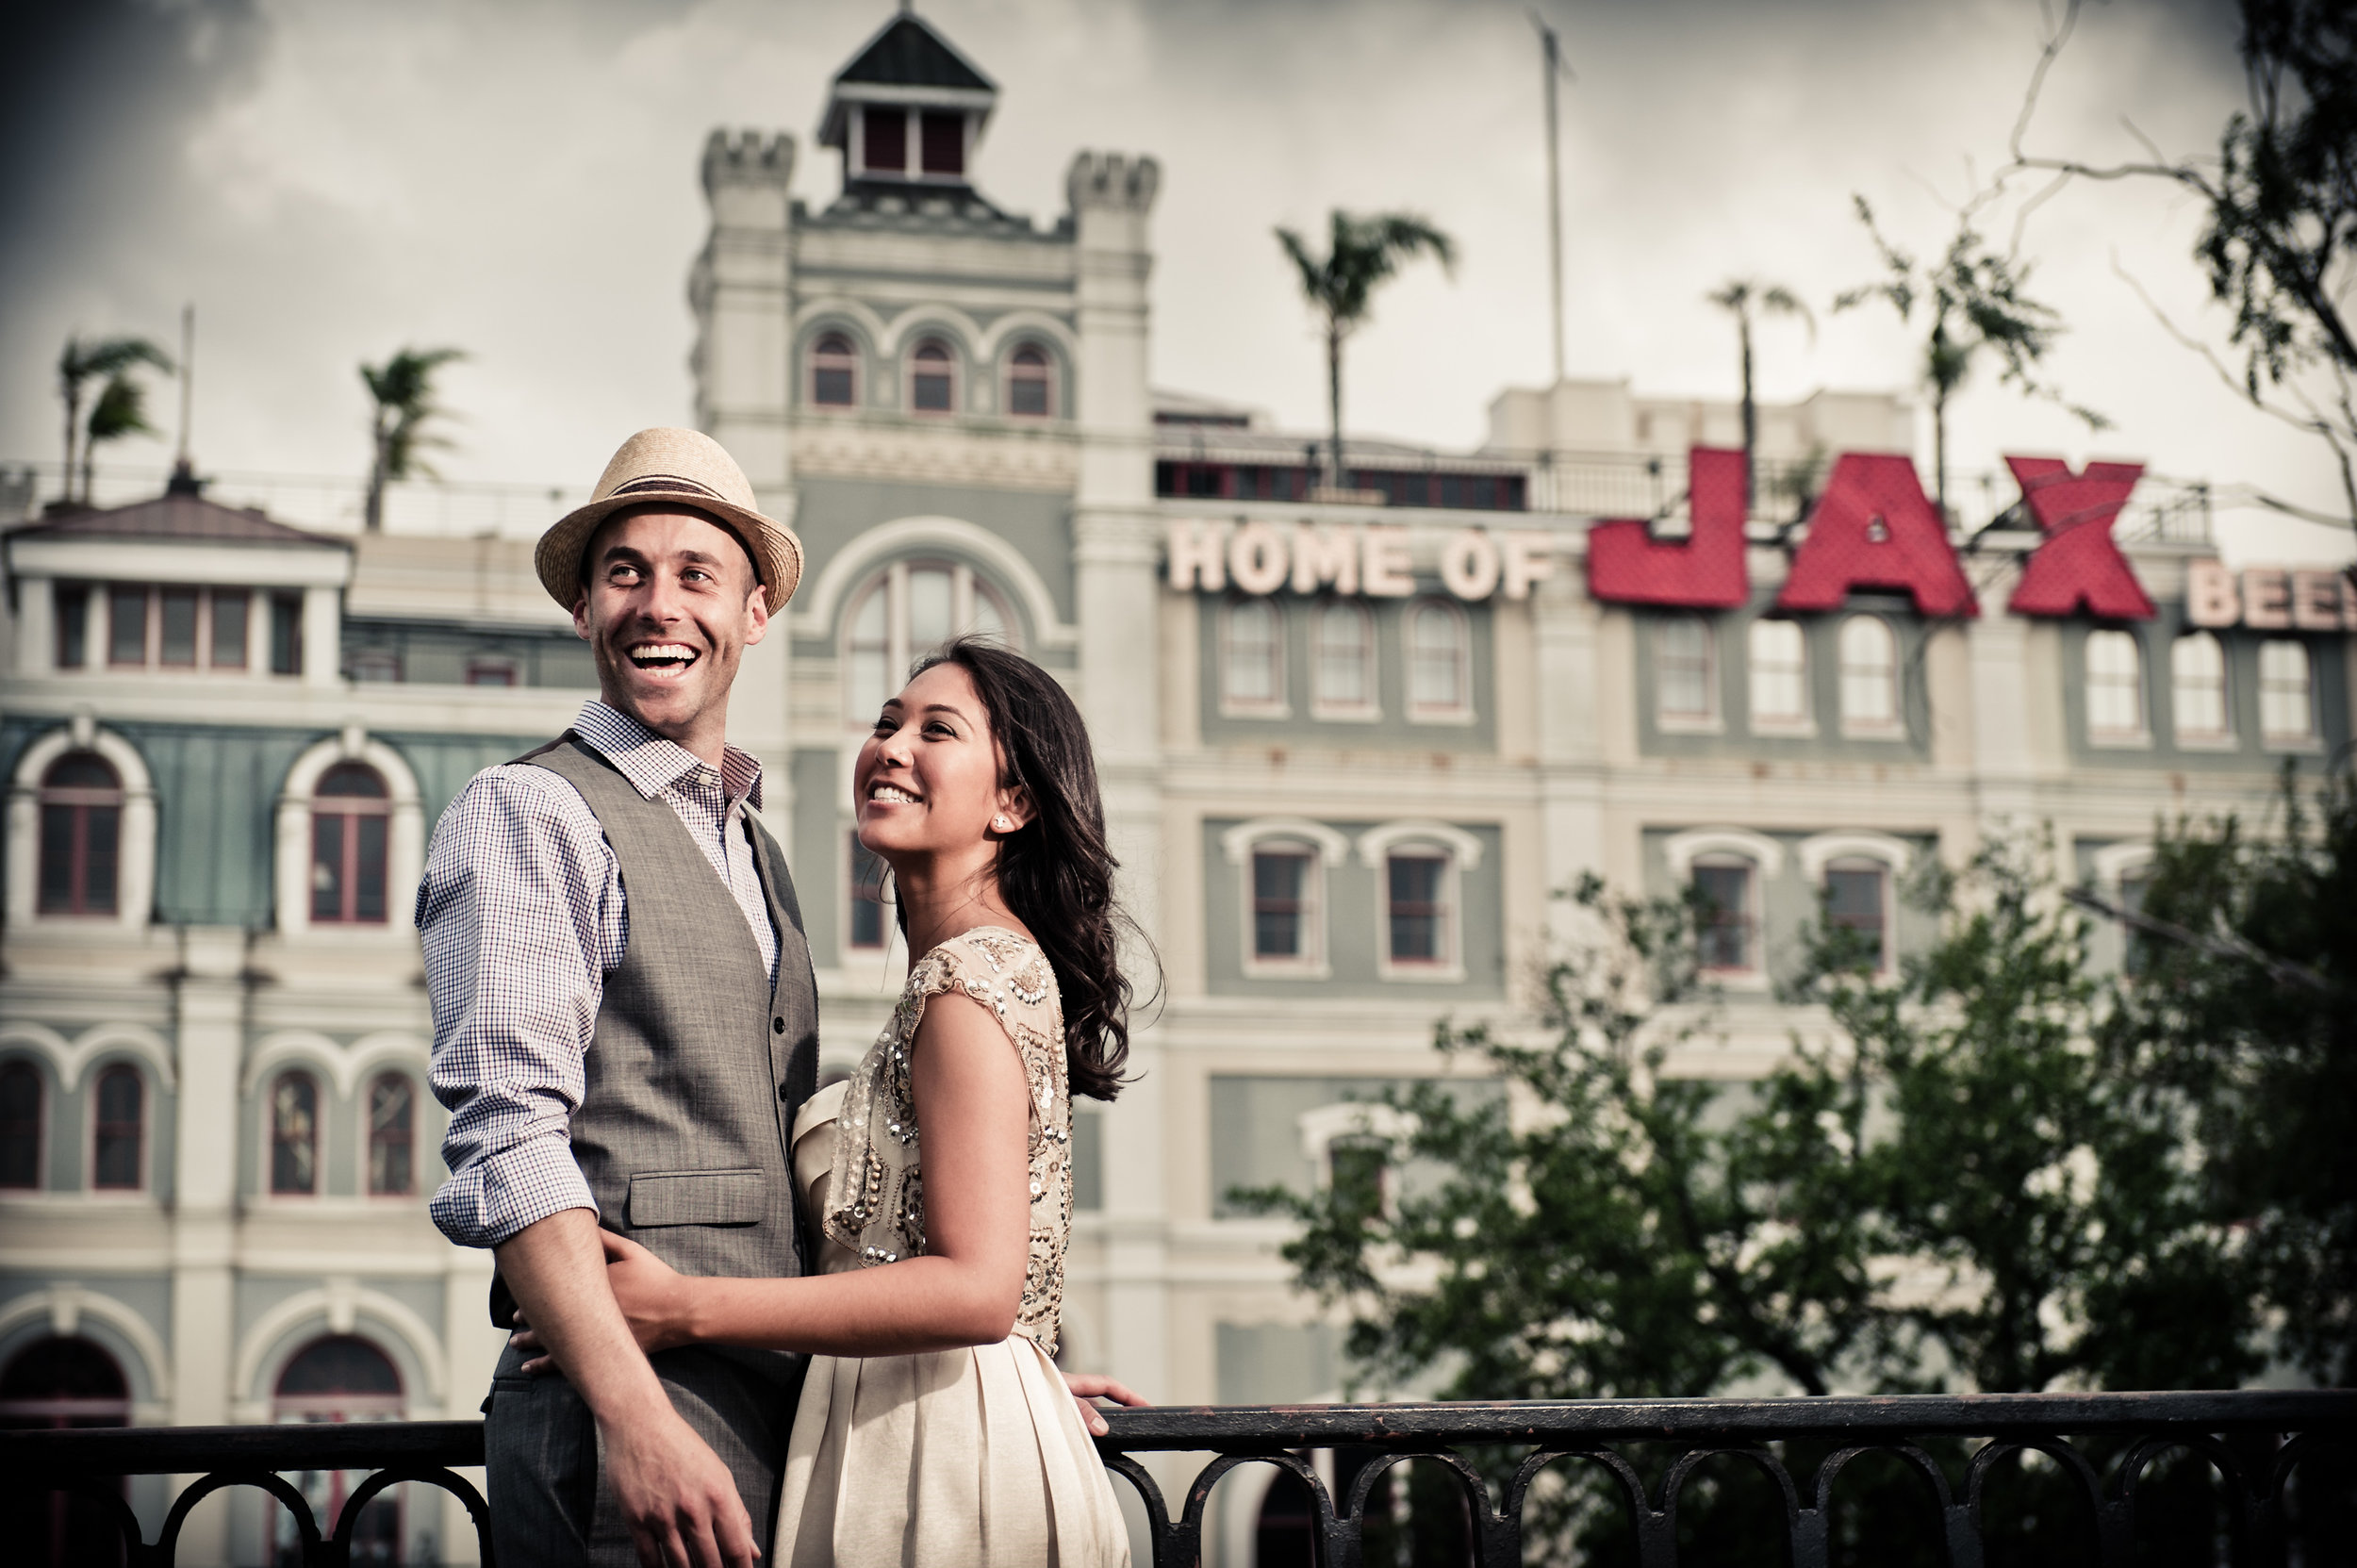 Wedding portrait in the French Quarter, New Orleans, in front of the old Jax brewery.